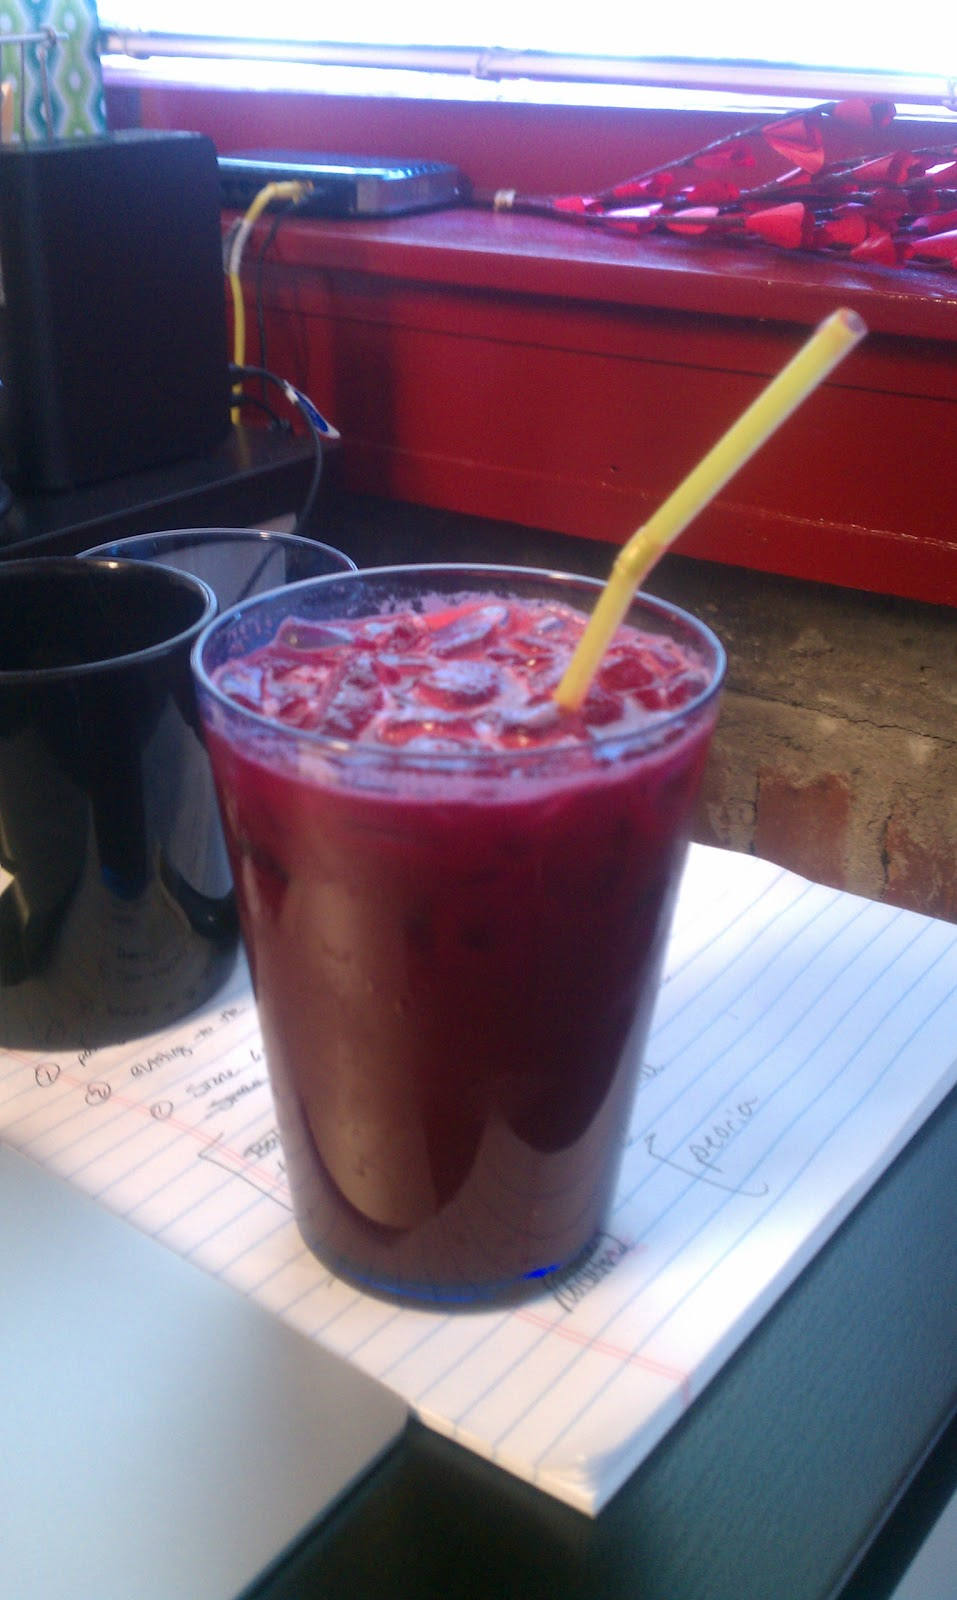 ... beet, 5 chopped carrots, 1 cored and chopped apple, 1/4 cup fresh mint